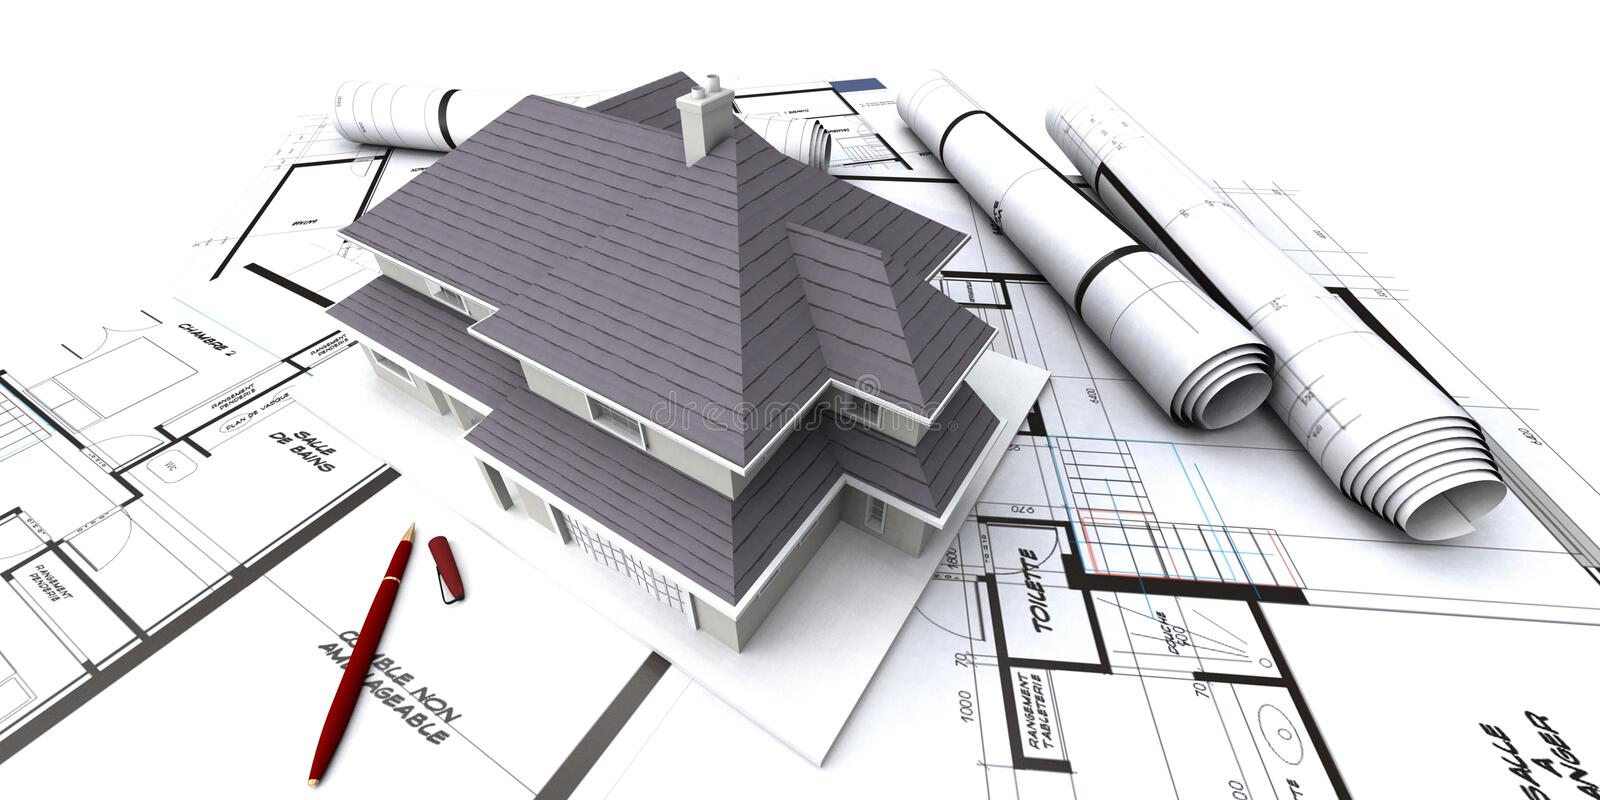 Awesome Download Houses On Architectu0027s Plan Stock Image. Image Of House   2008837